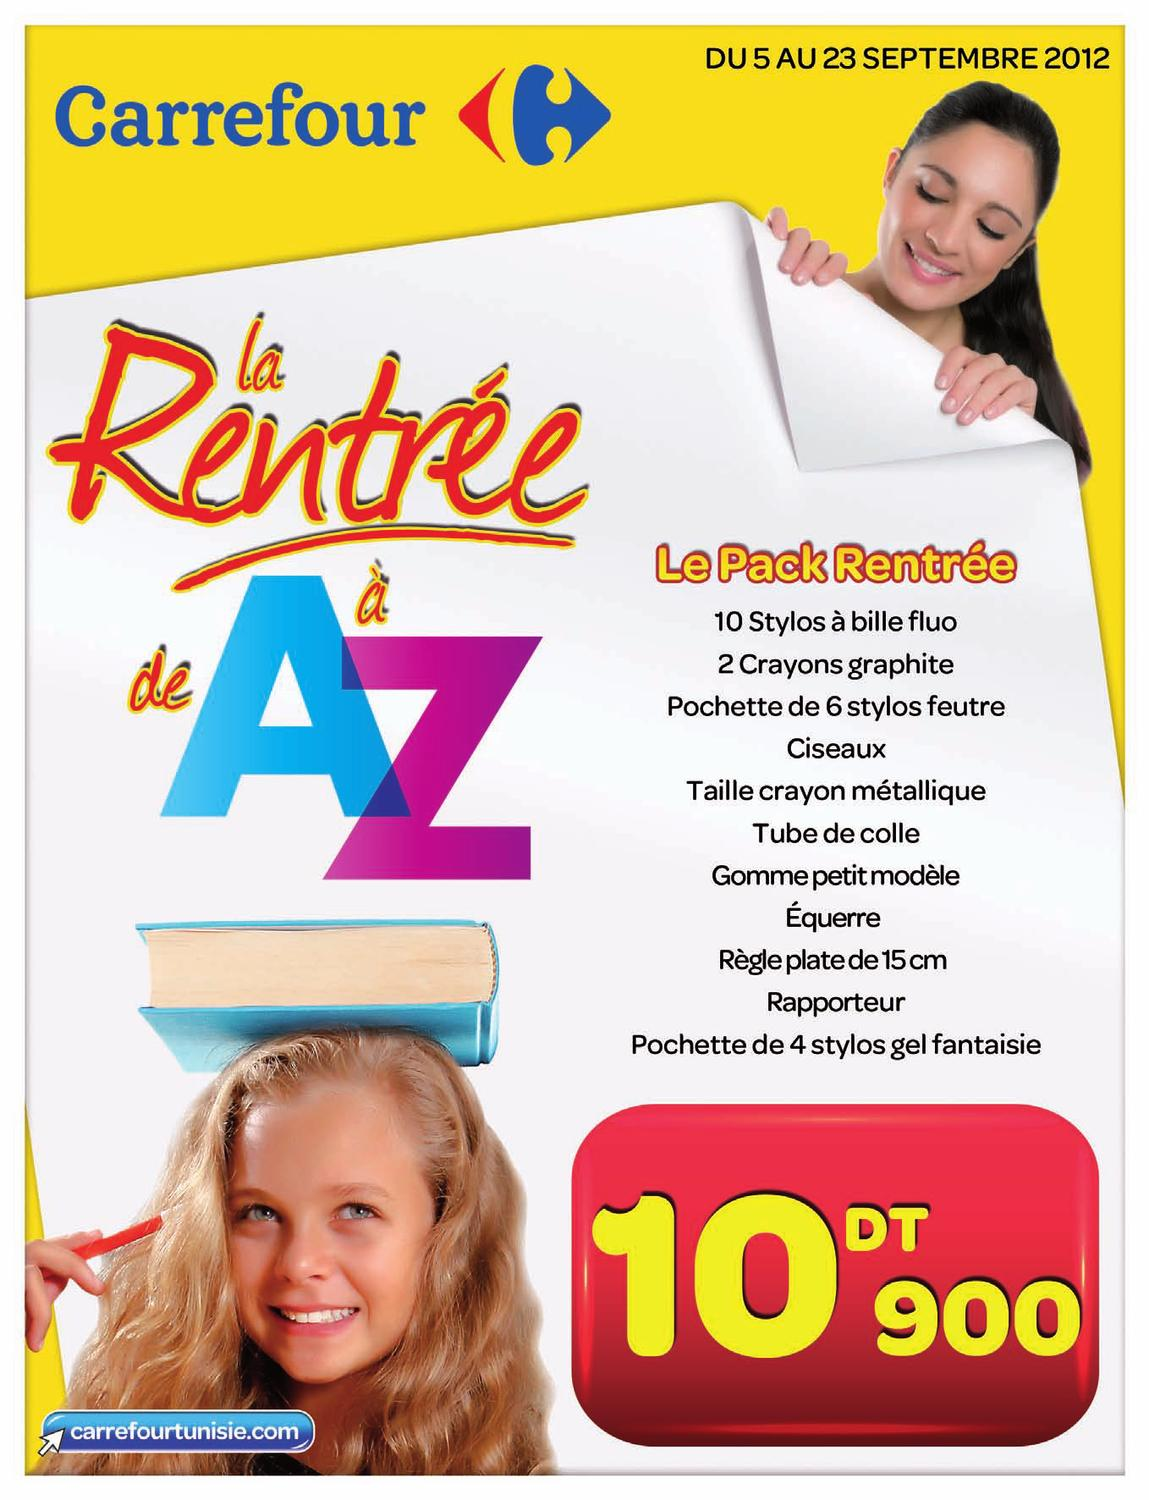 Ardoise Velleda Carrefour Catalogue Carrefour Rentree Scolaire 2012 1013 By